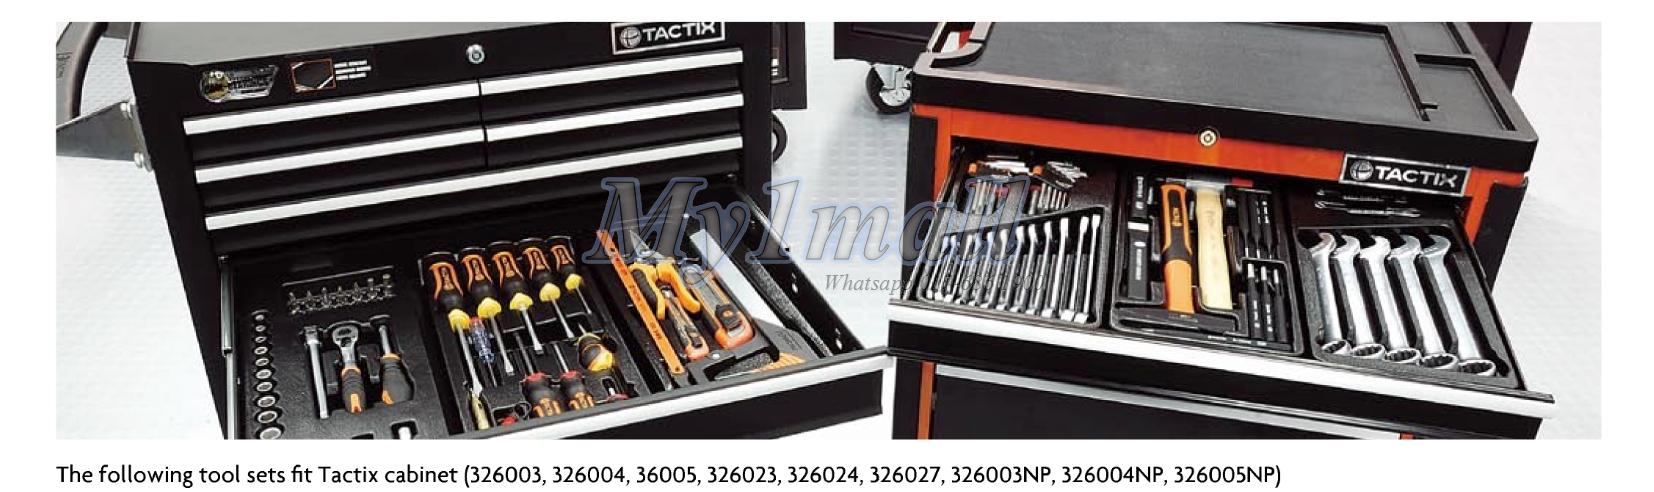 TACTIX 327501 4pcs Plier Cutter Tool Set